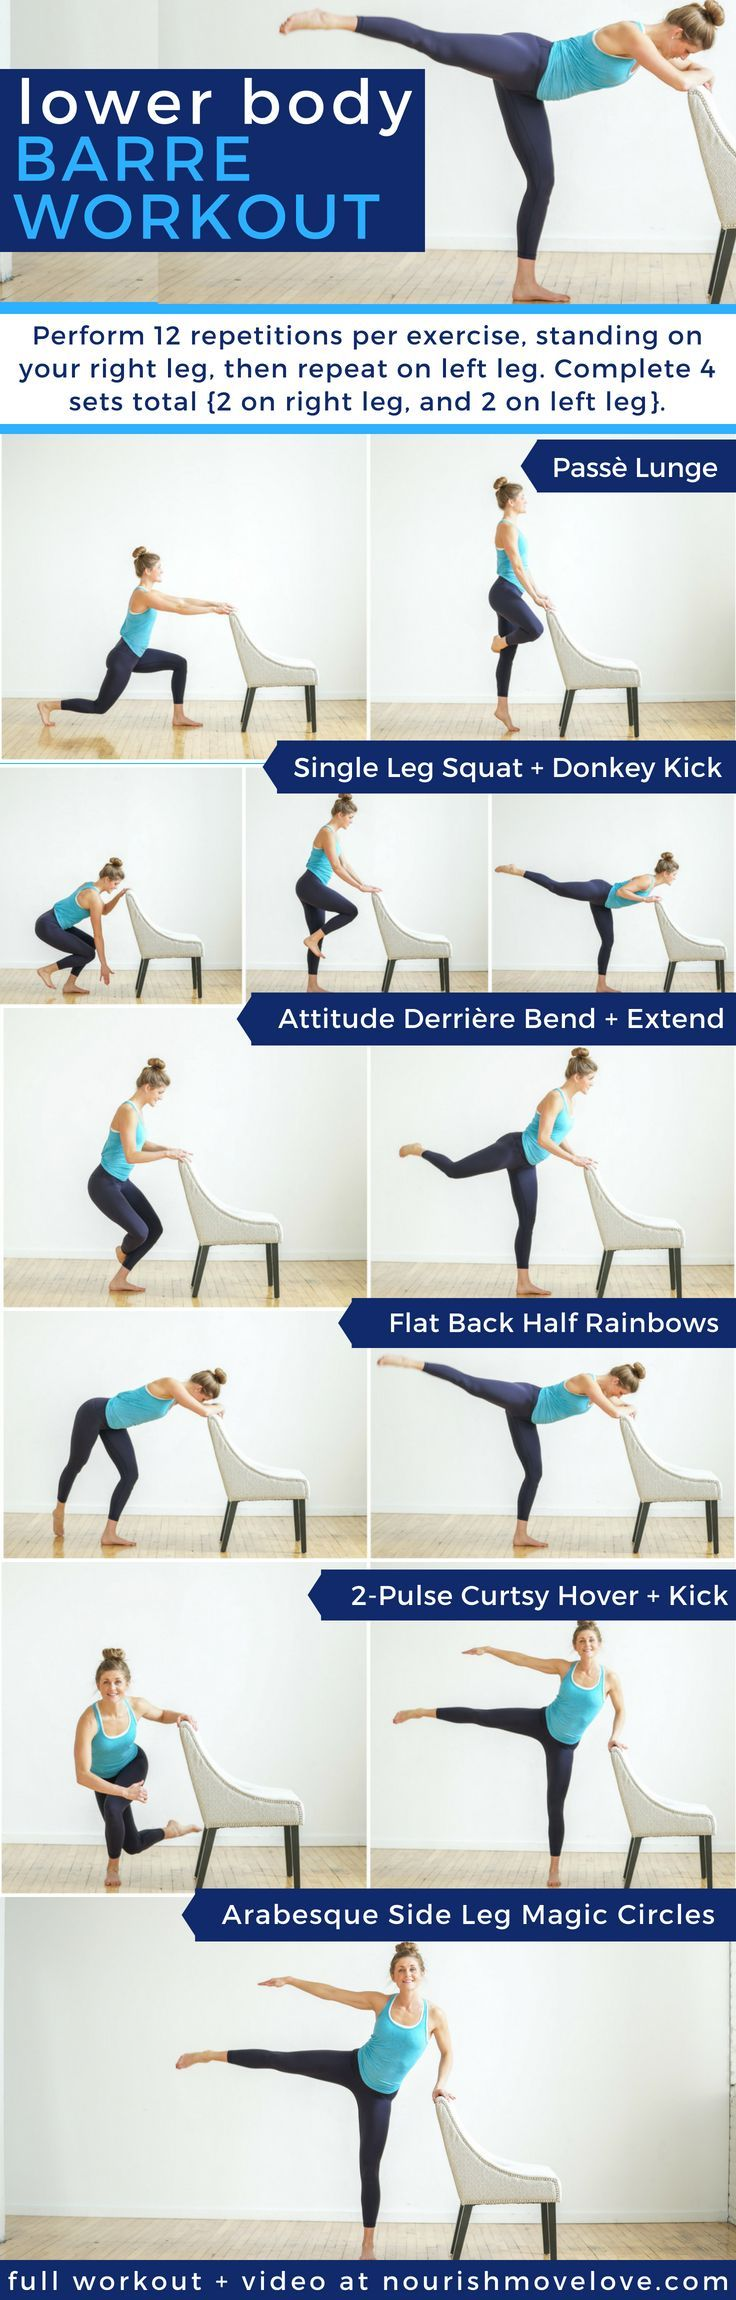 6 Glute Toning Barre Moves | glute exercises | glute exercises for women |  butt workouts | leg workouts | lower body workouts |   barre workouts || Nourish Move Love #glutesworkout #workout #strength